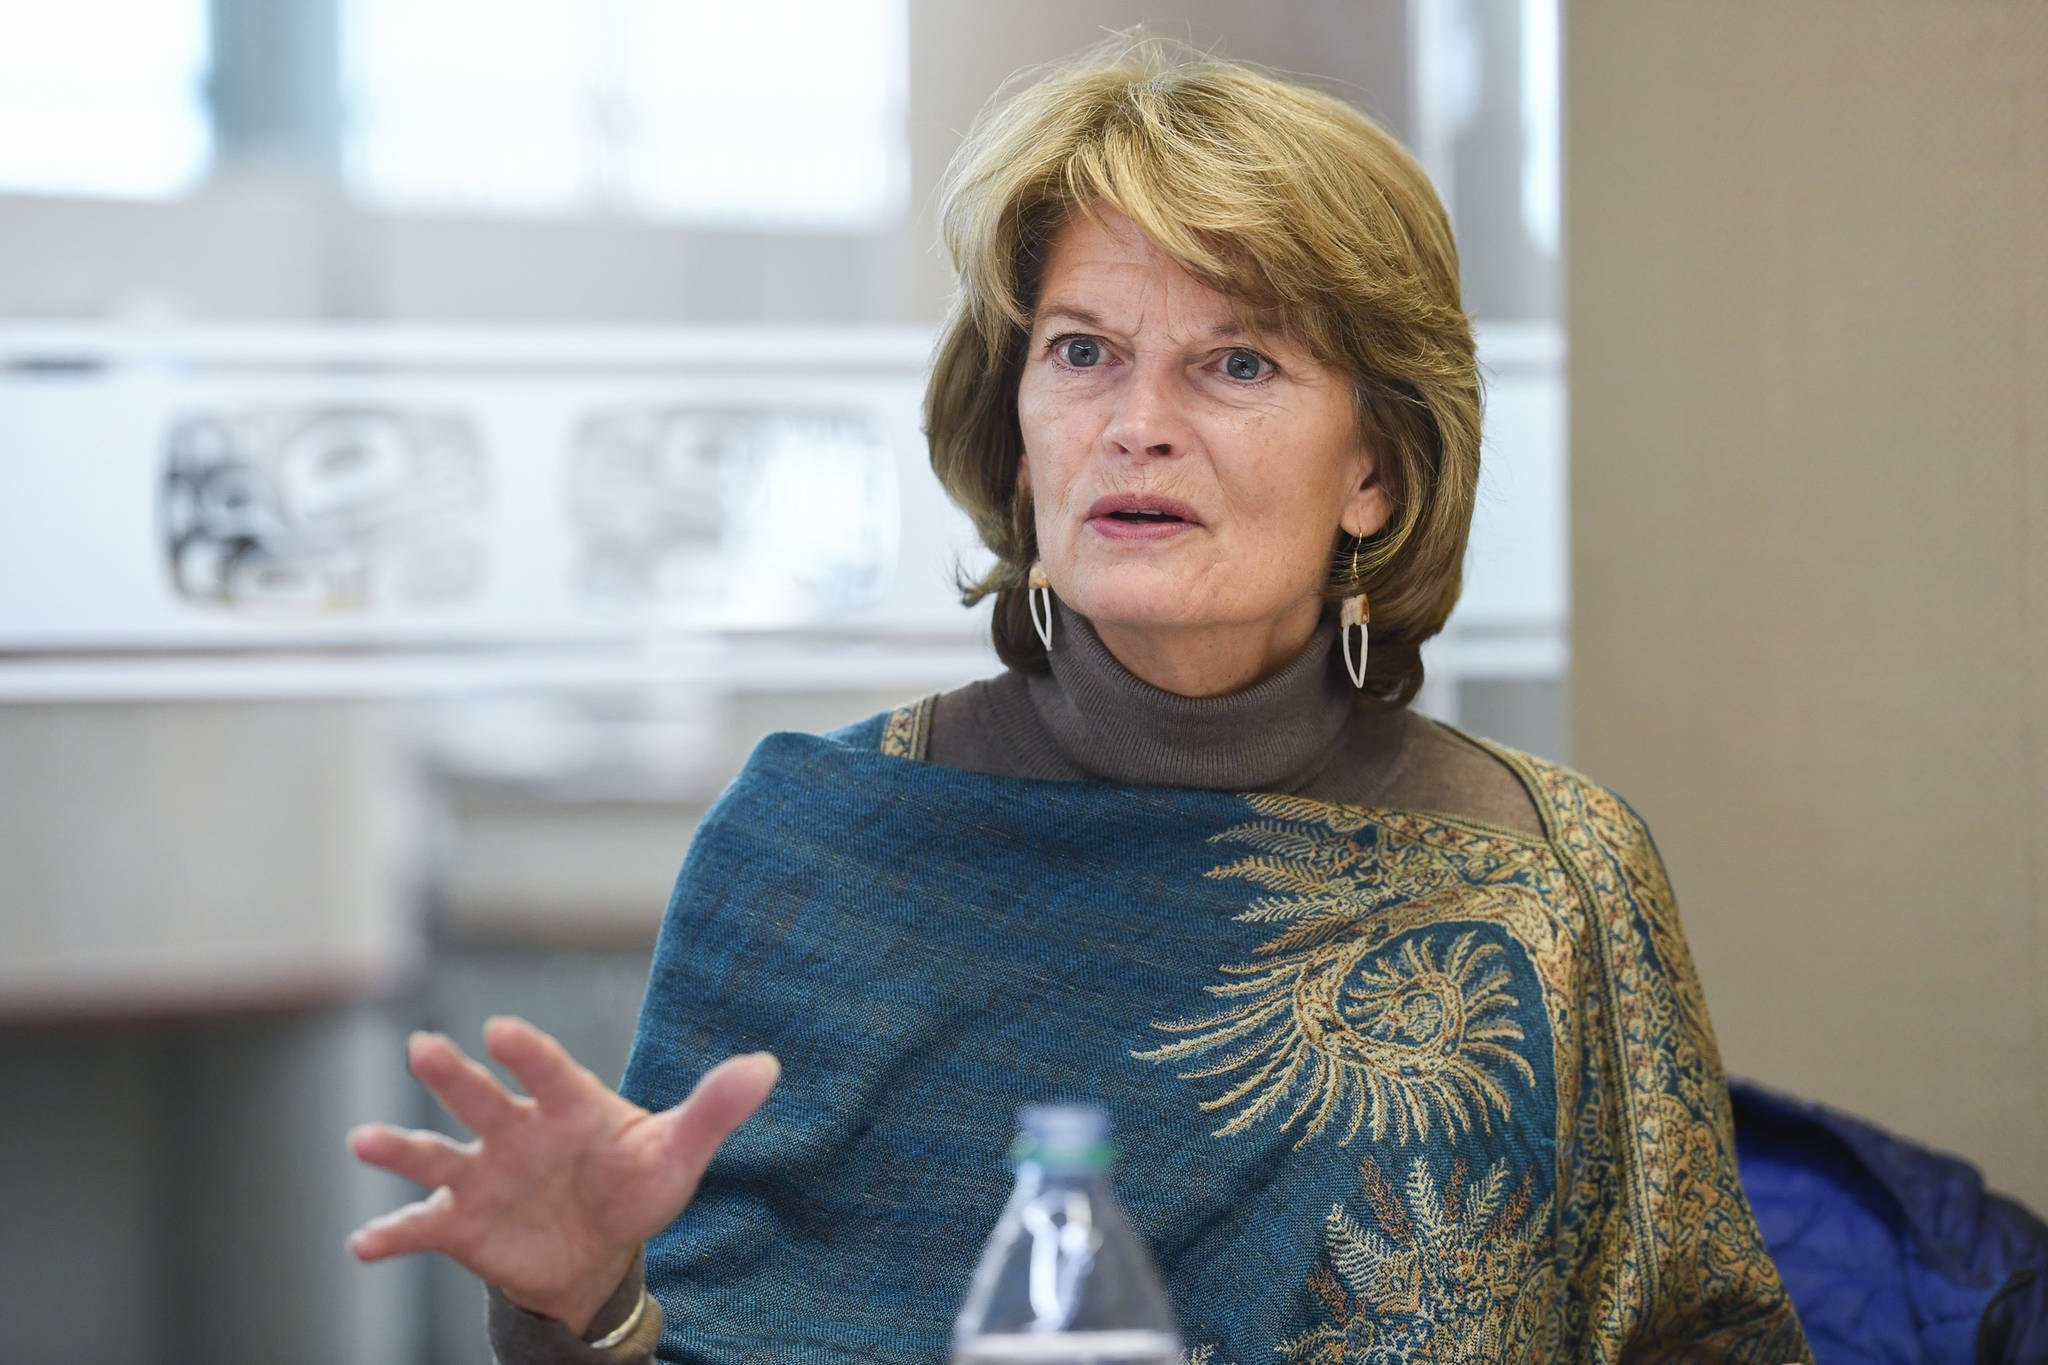 Murkowski knocks Green New Deal's 'impossible' timeline, wary of 'PFD over everything else'